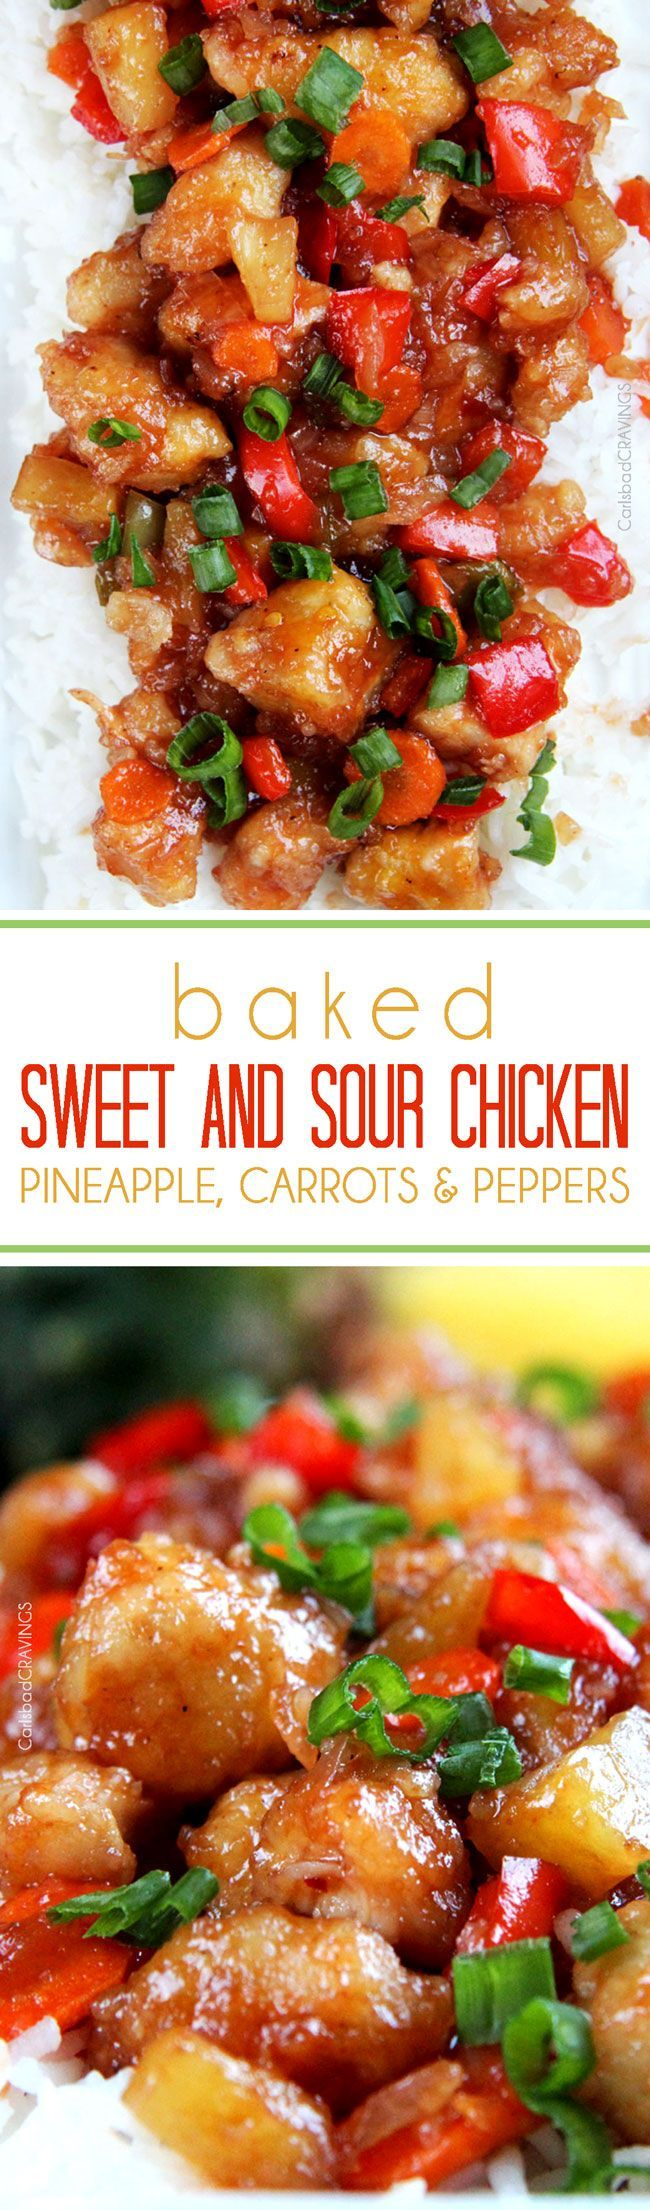 The BEST Sweet and Sour chicken - takeout OR homemade - I have ever had in my entire life! It is also baked with pineapple, carrots, onions and bell peppers all in ONE BAKING DISH! No need to stir fry extra veggies!